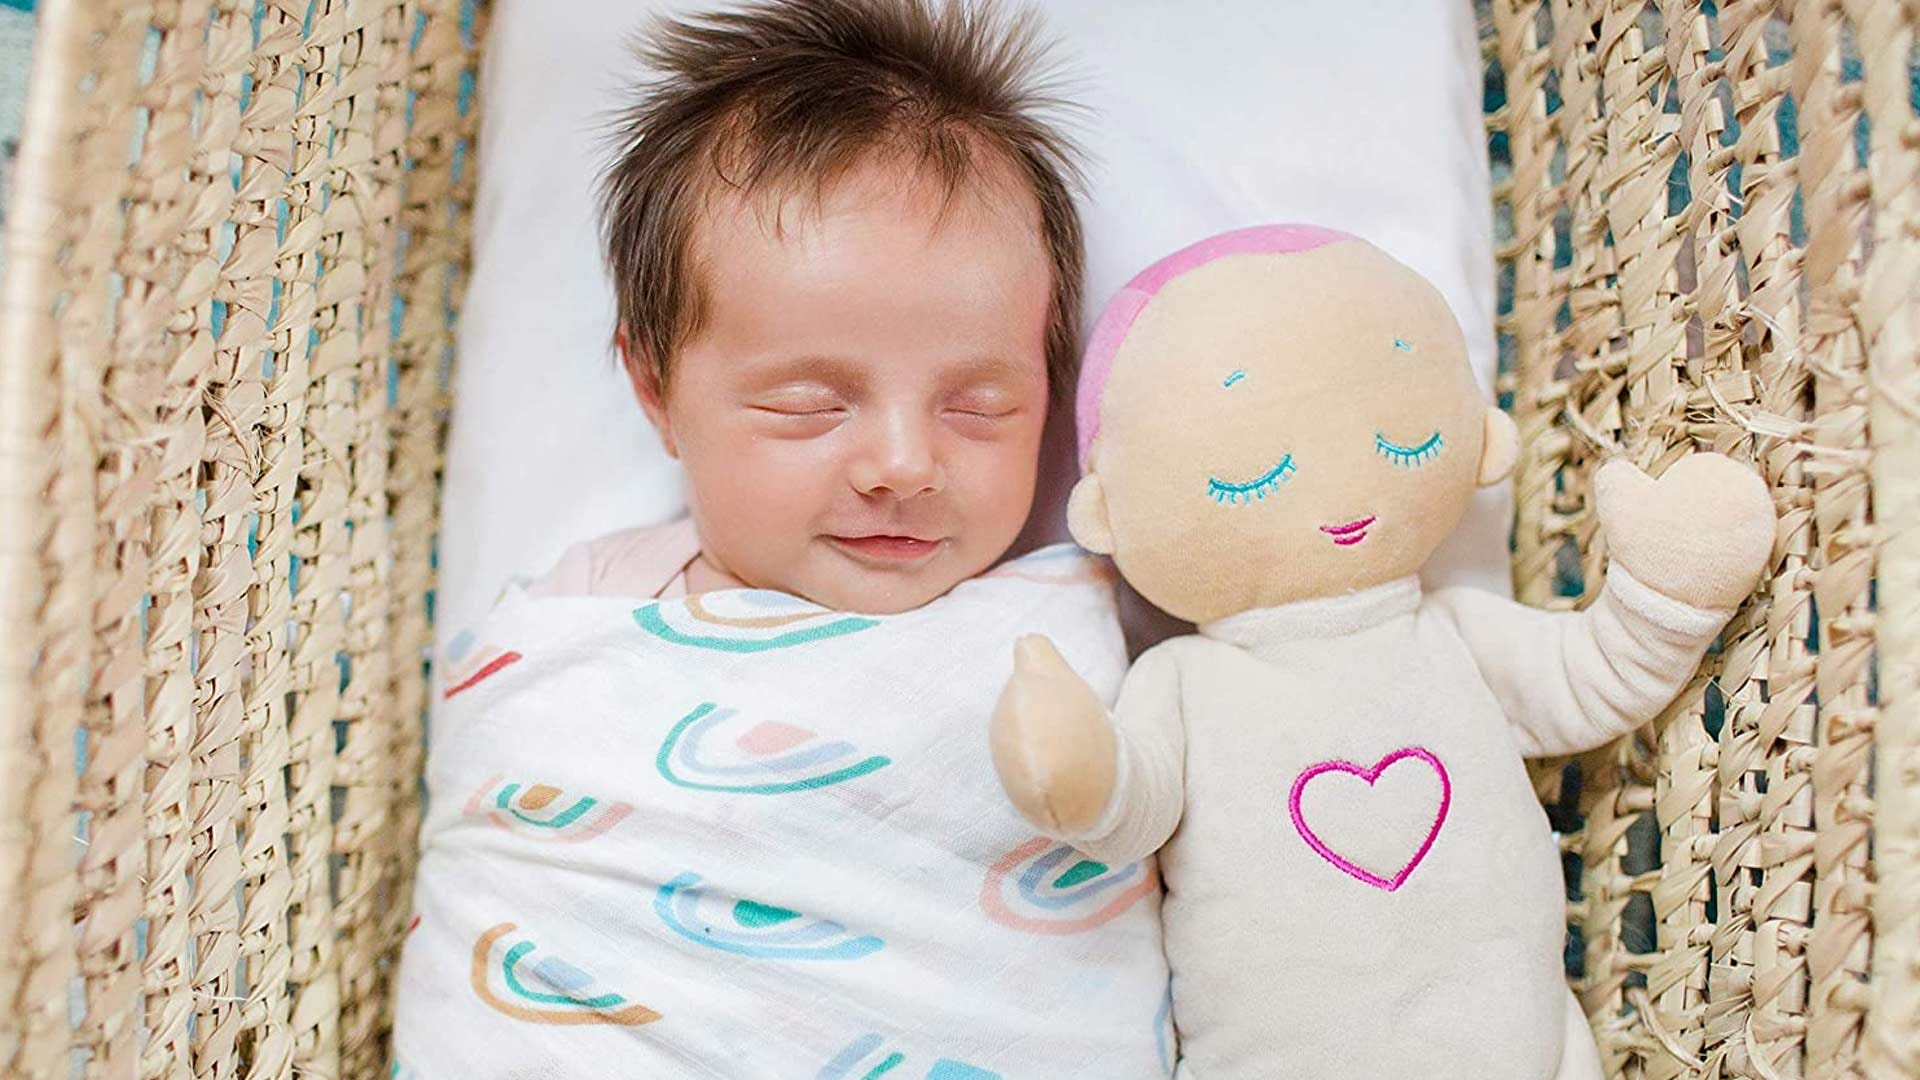 A baby sleeping with a soothing doll.